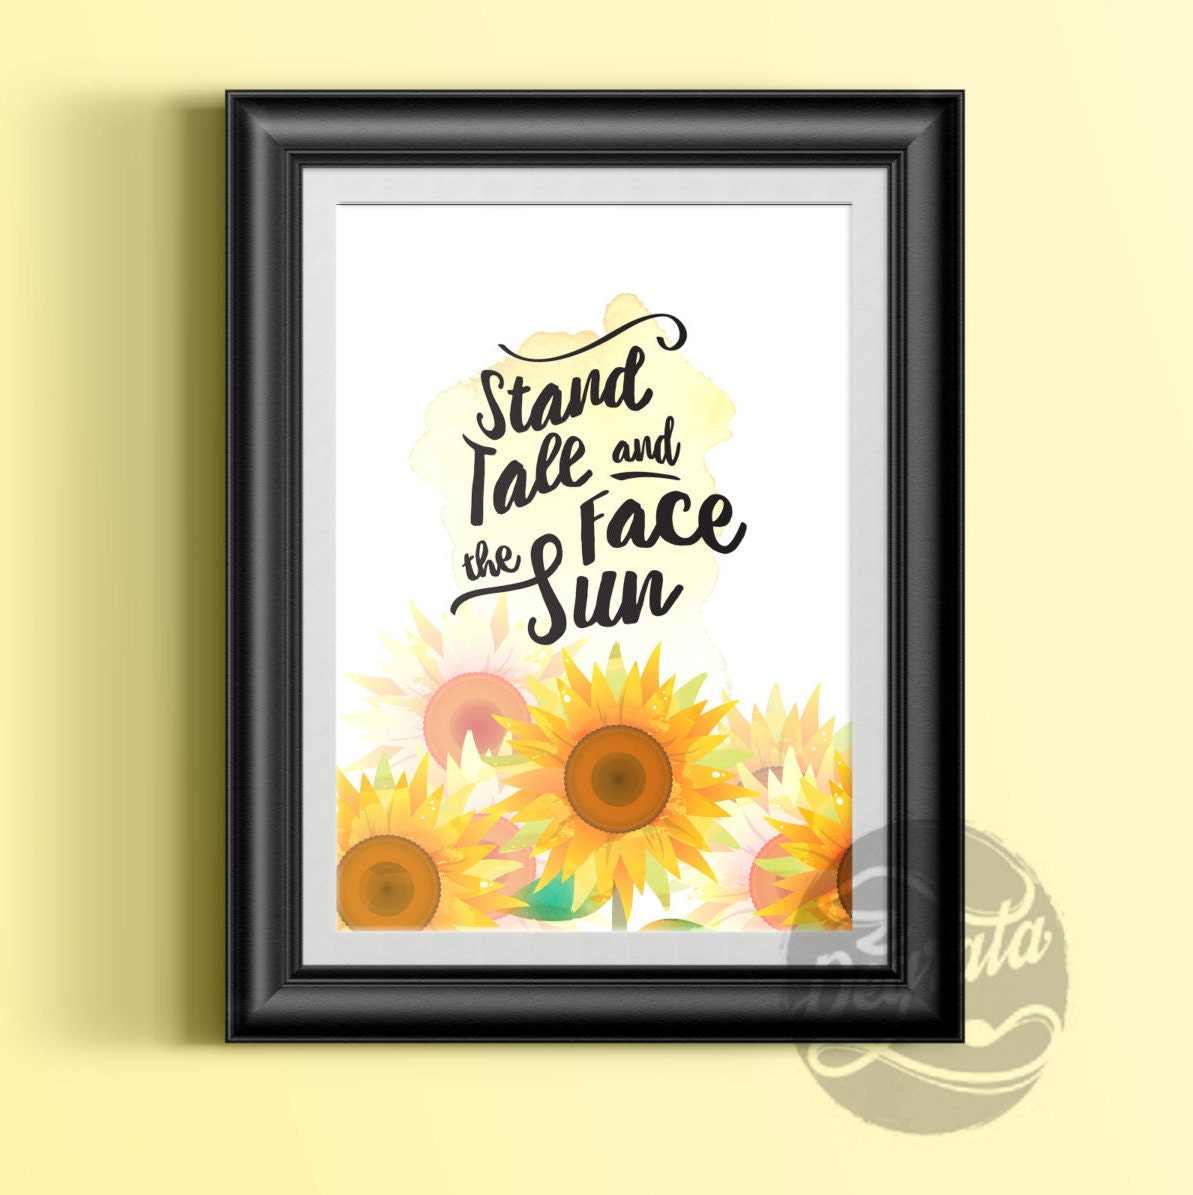 Printable Sunflower Stand Tall & Face The Sun Wall Art | Etsy